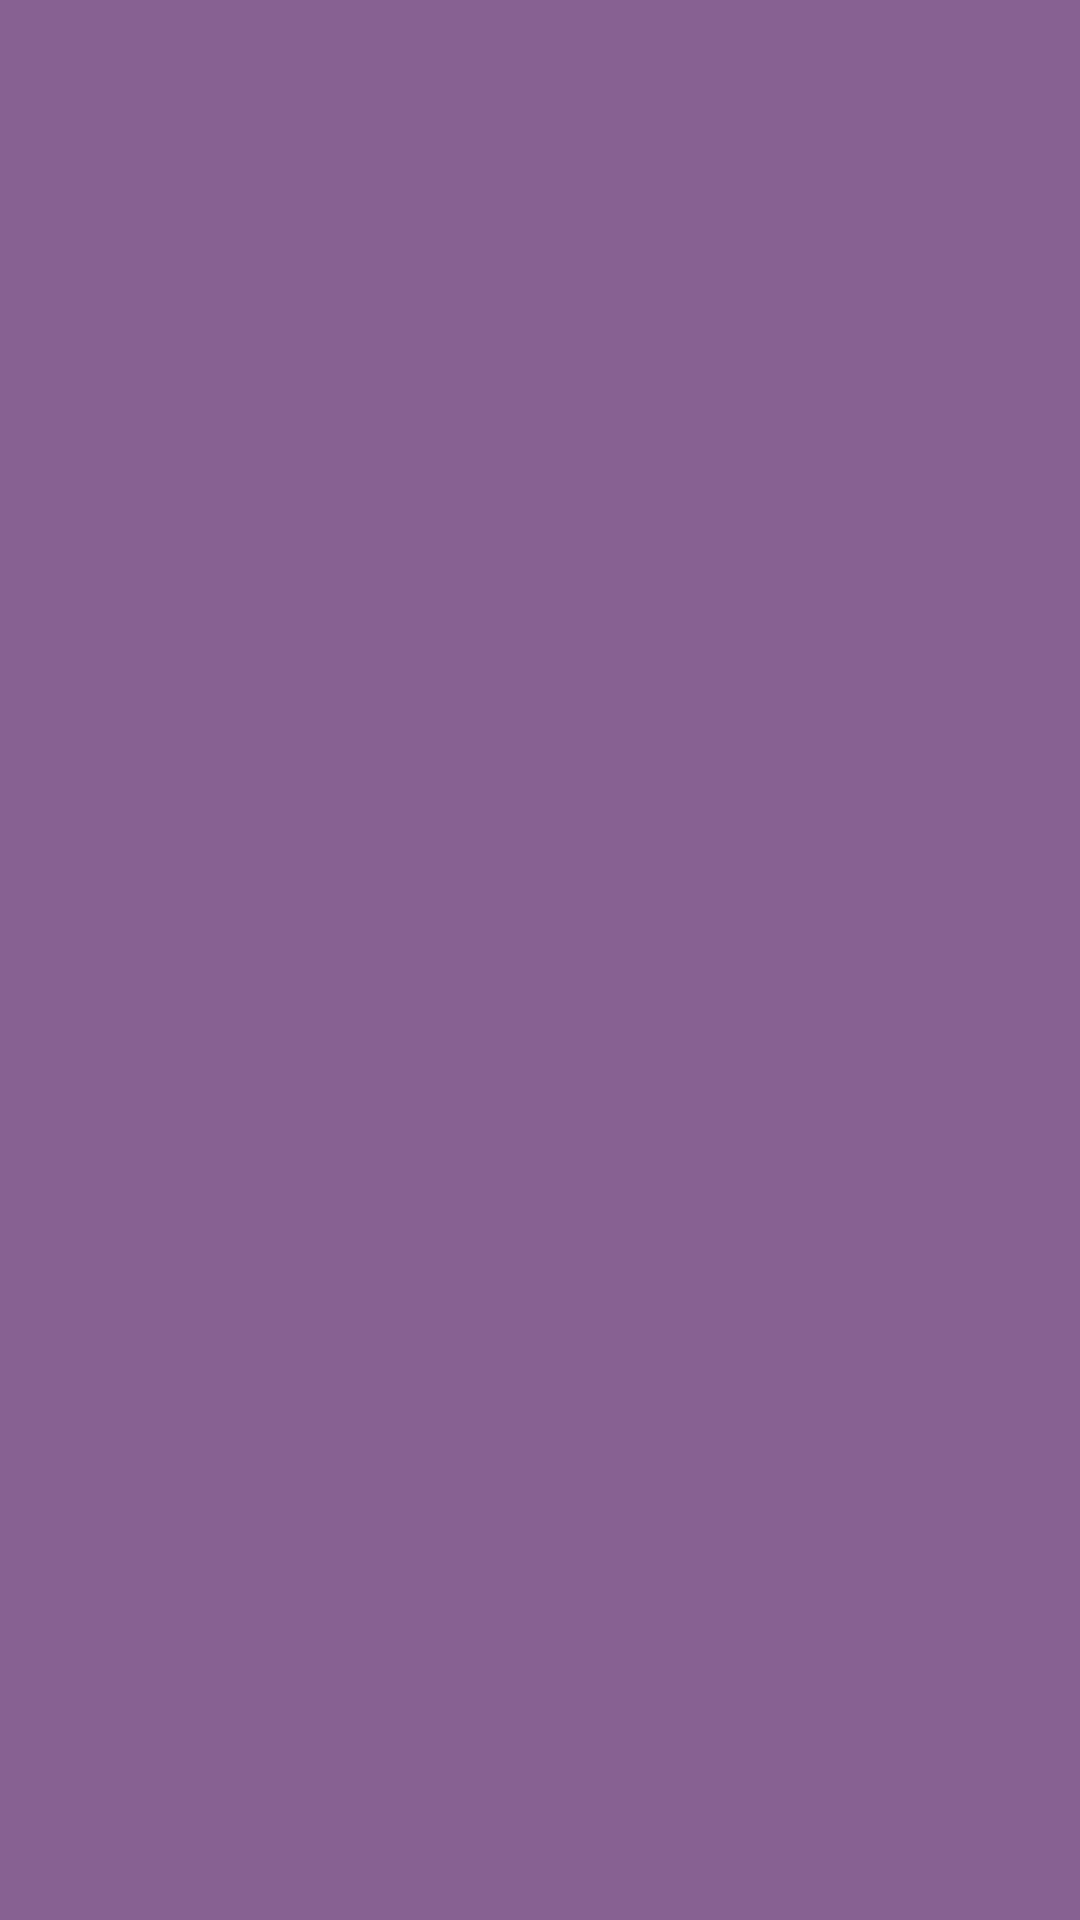 1080x1920 French Lilac Solid Color Background